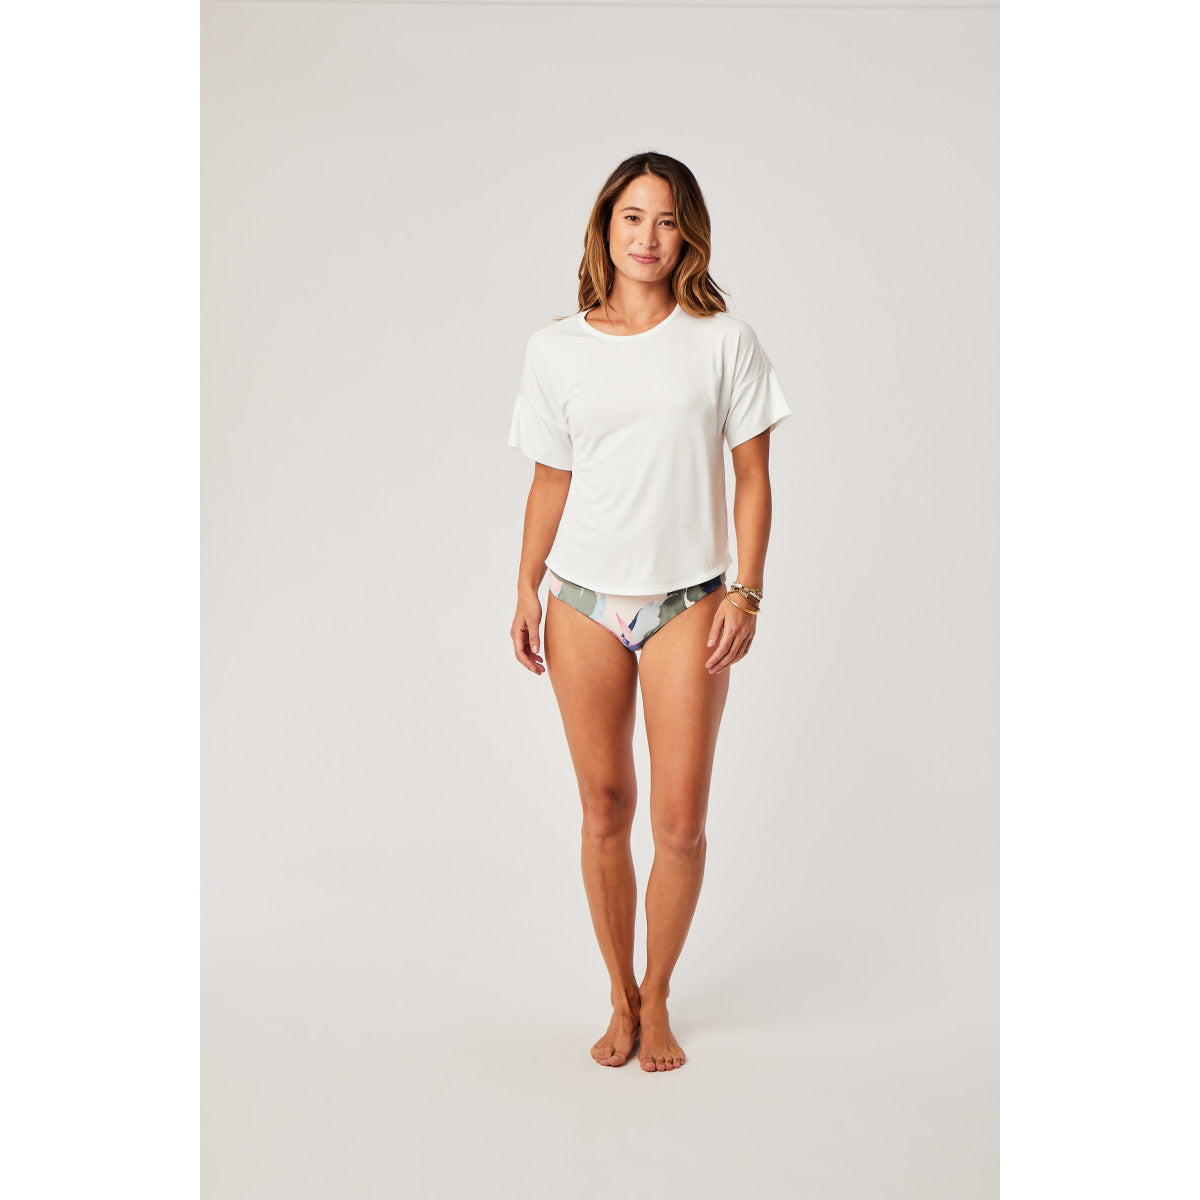 Carve Designs Marley Sunshirt - Sale